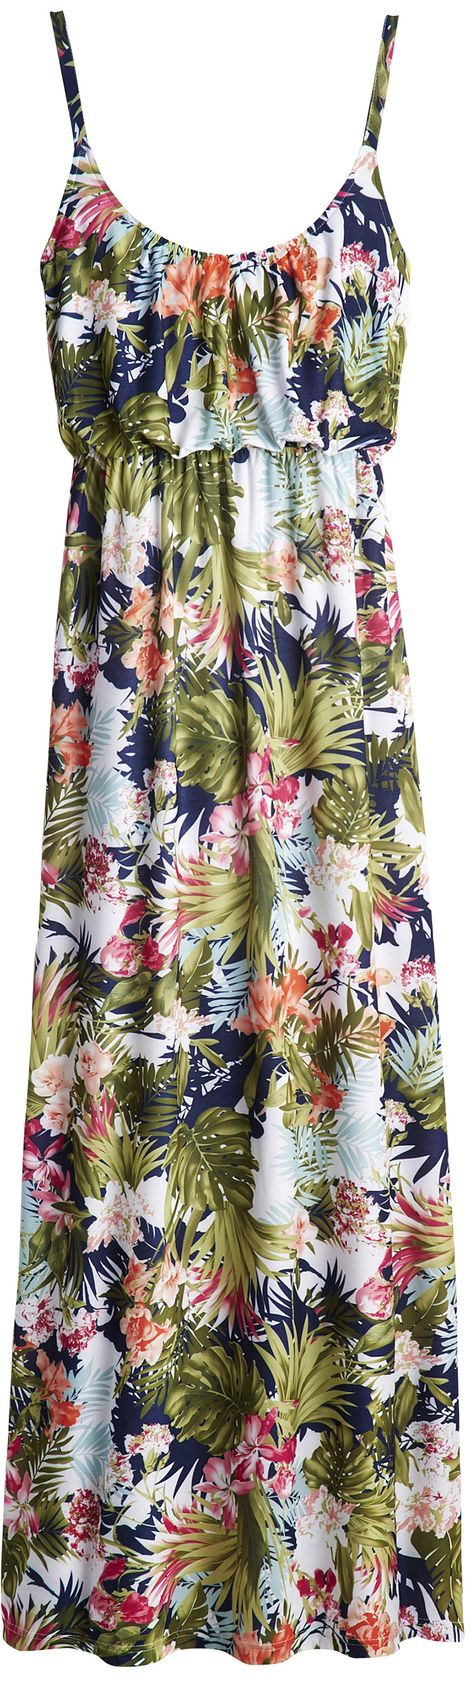 cute floral plus size maxi dress for travel & beach vacays - http://www.boomerinas.com/2012/09/30/knit-jersey-dresses-travel-wear-for-women-over-40-or-50/